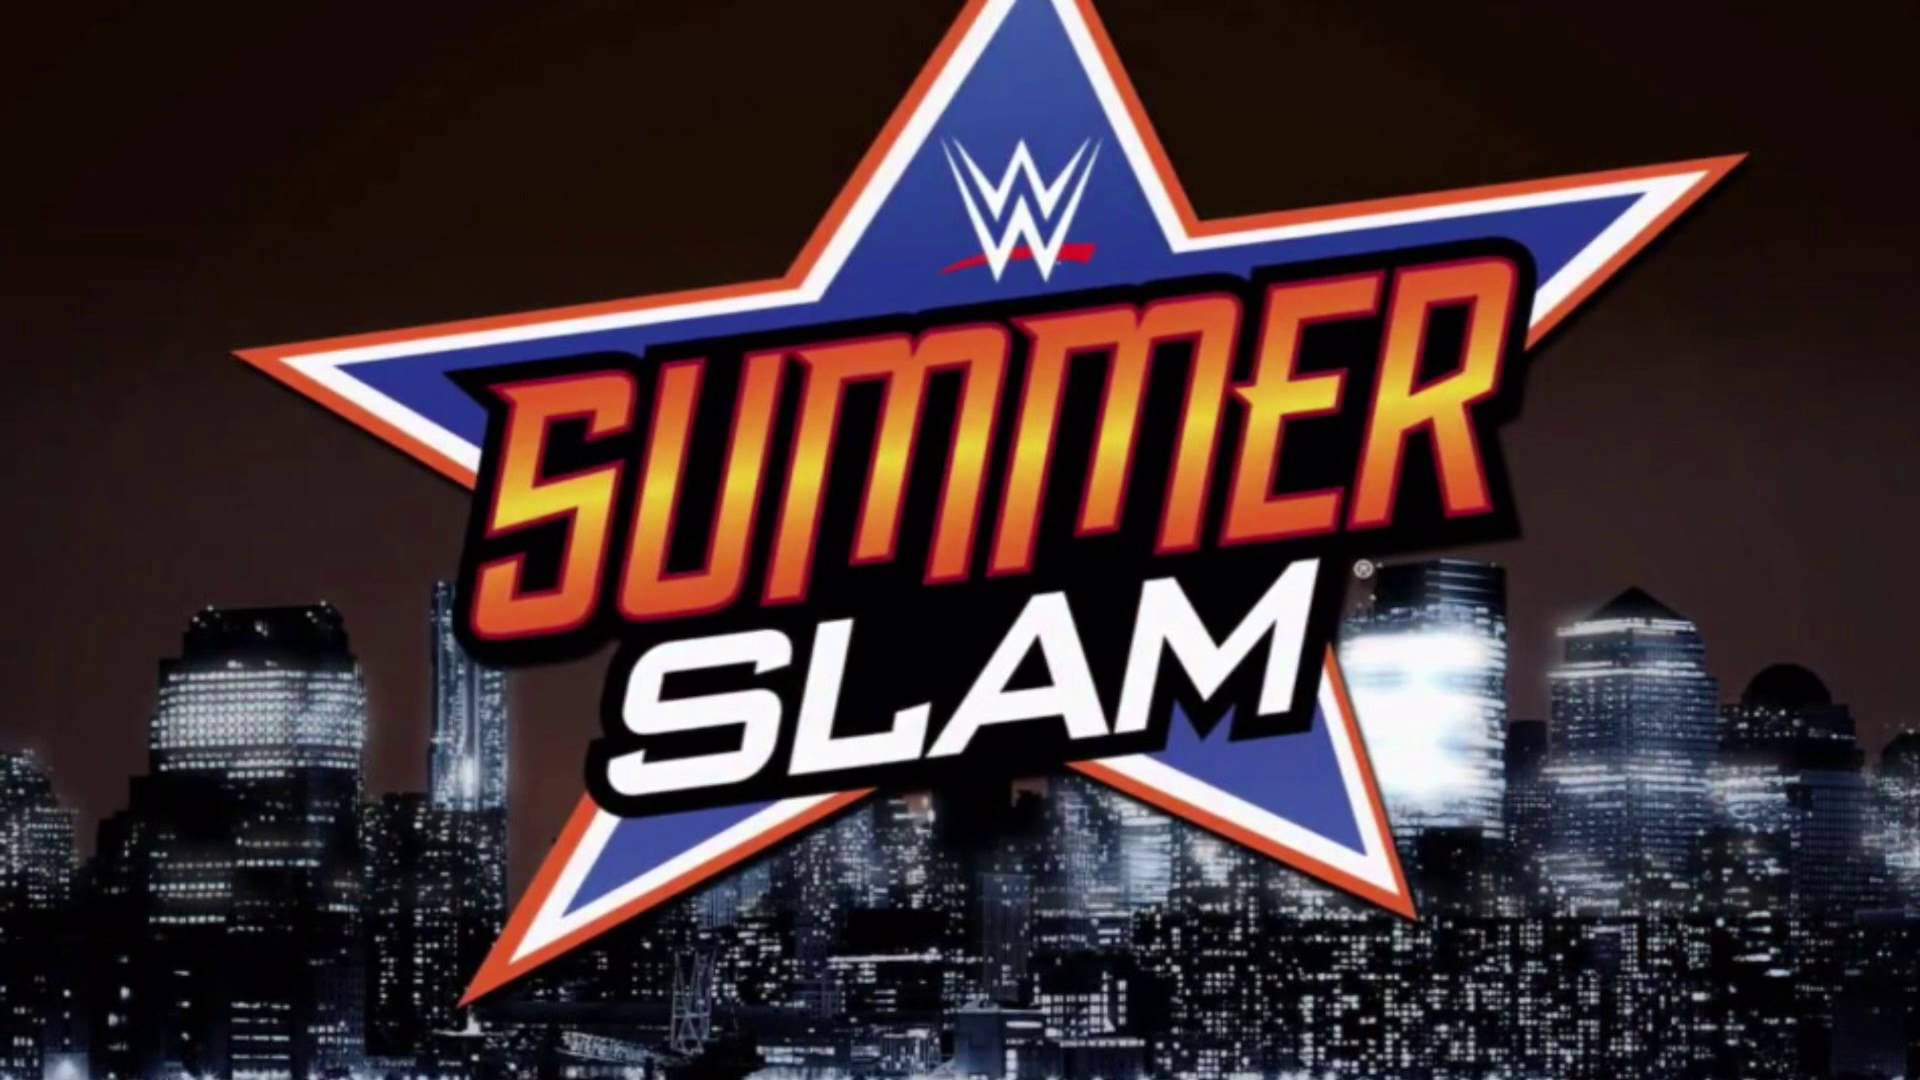 WWE SummerSlam is leaving Brooklyn in 2019 for the first time in five years